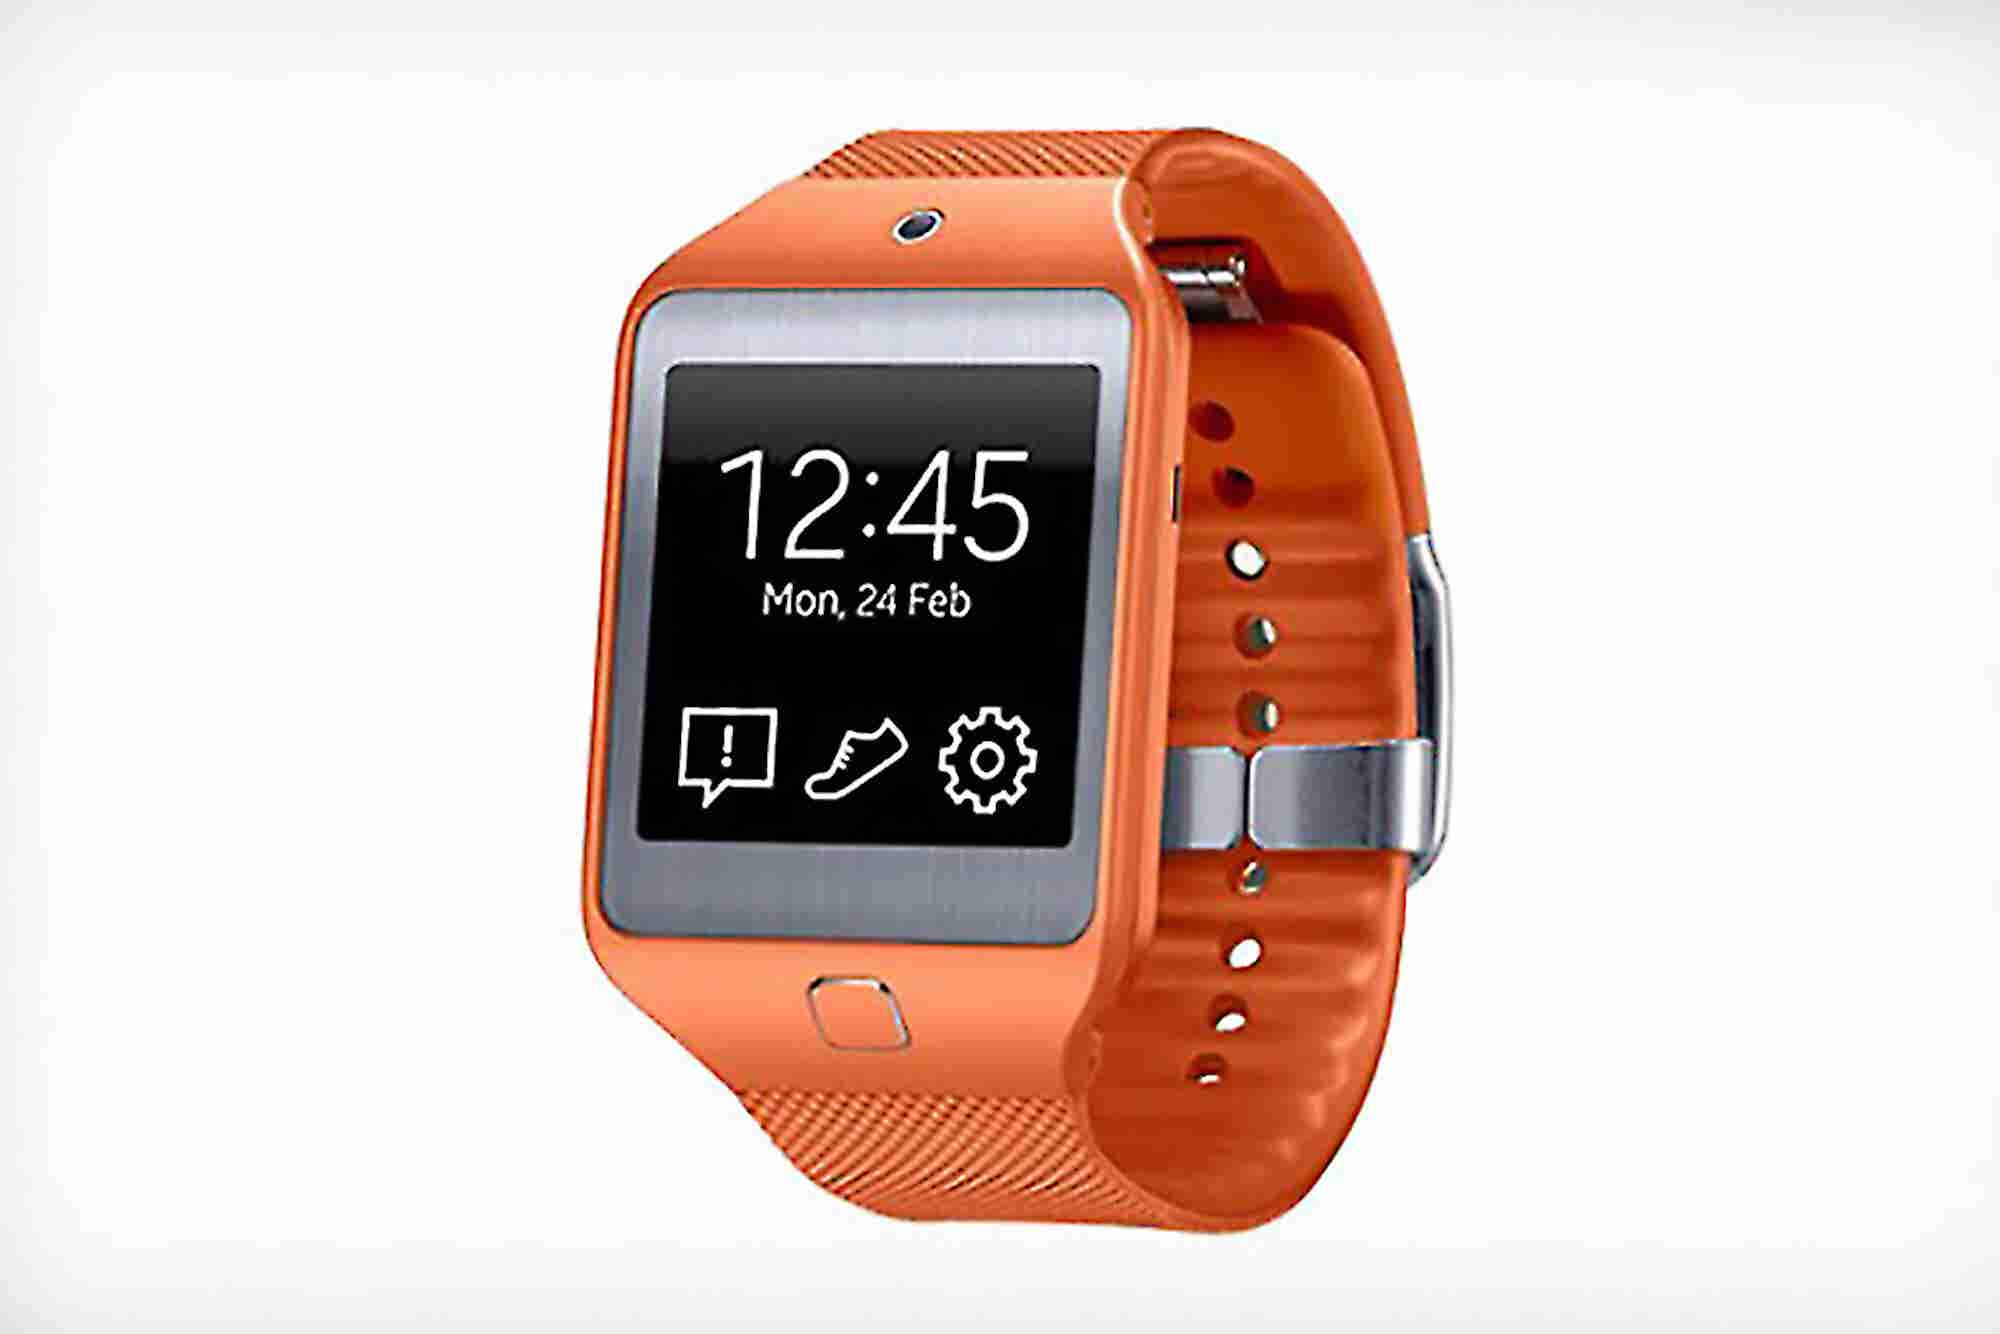 Samsung Unveils Next Generation Gear Smartwatches Ahead of Mobile Conference